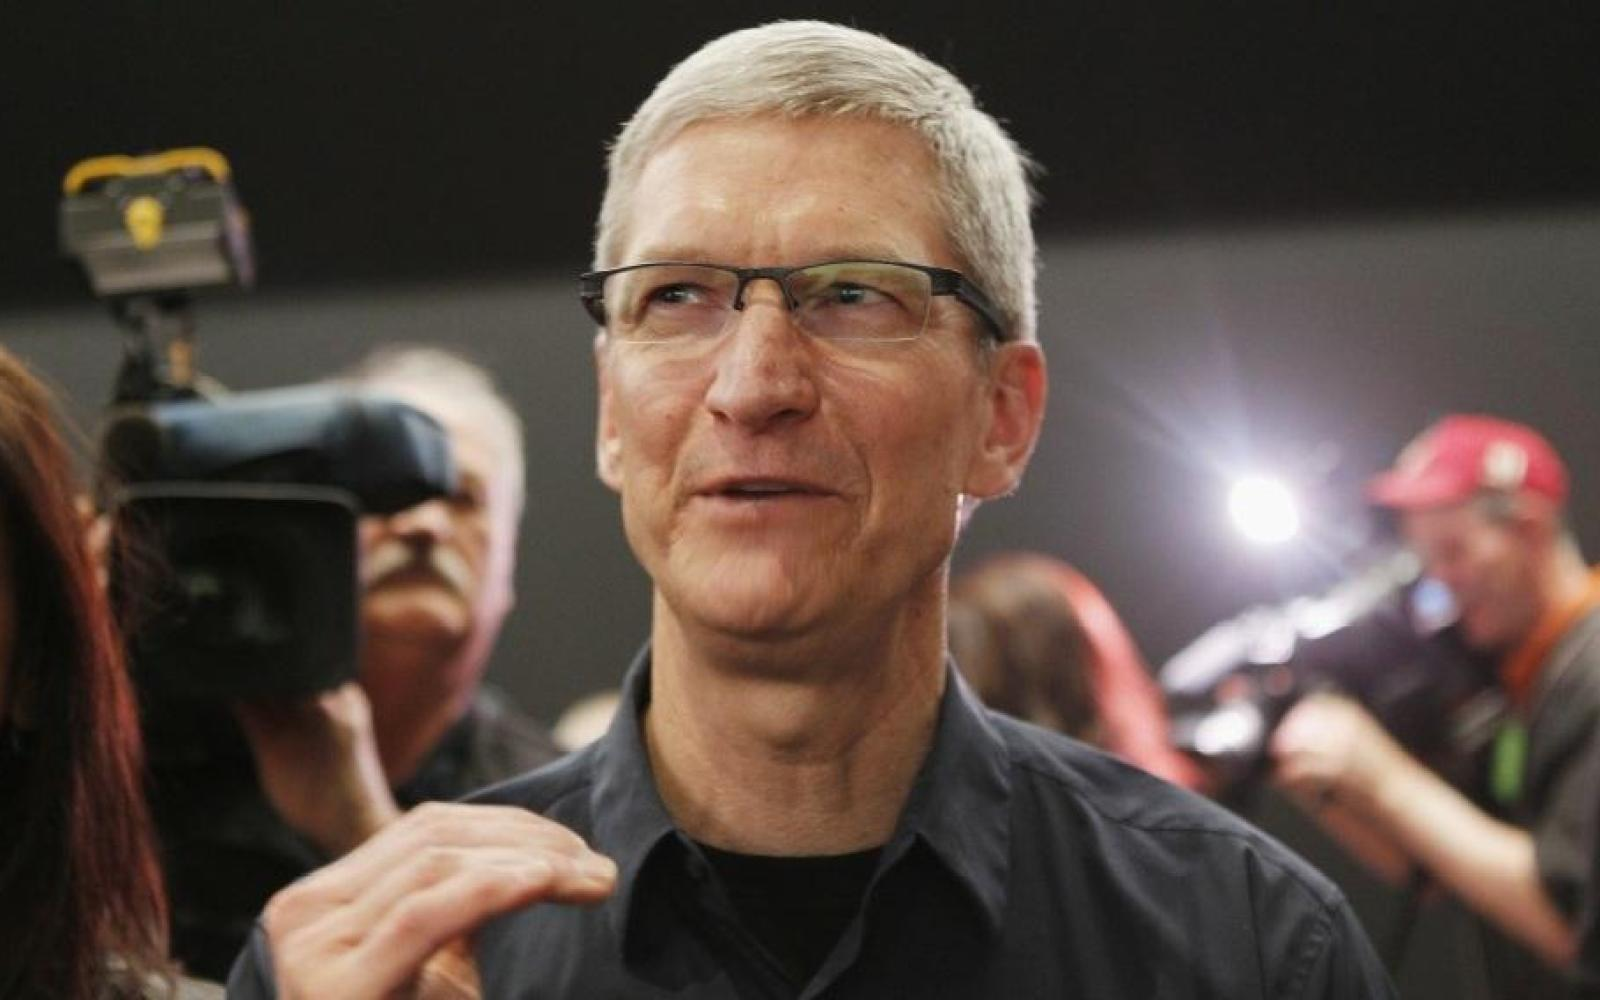 AAPL up 8% to near record highs, bringing the rest of the market with it